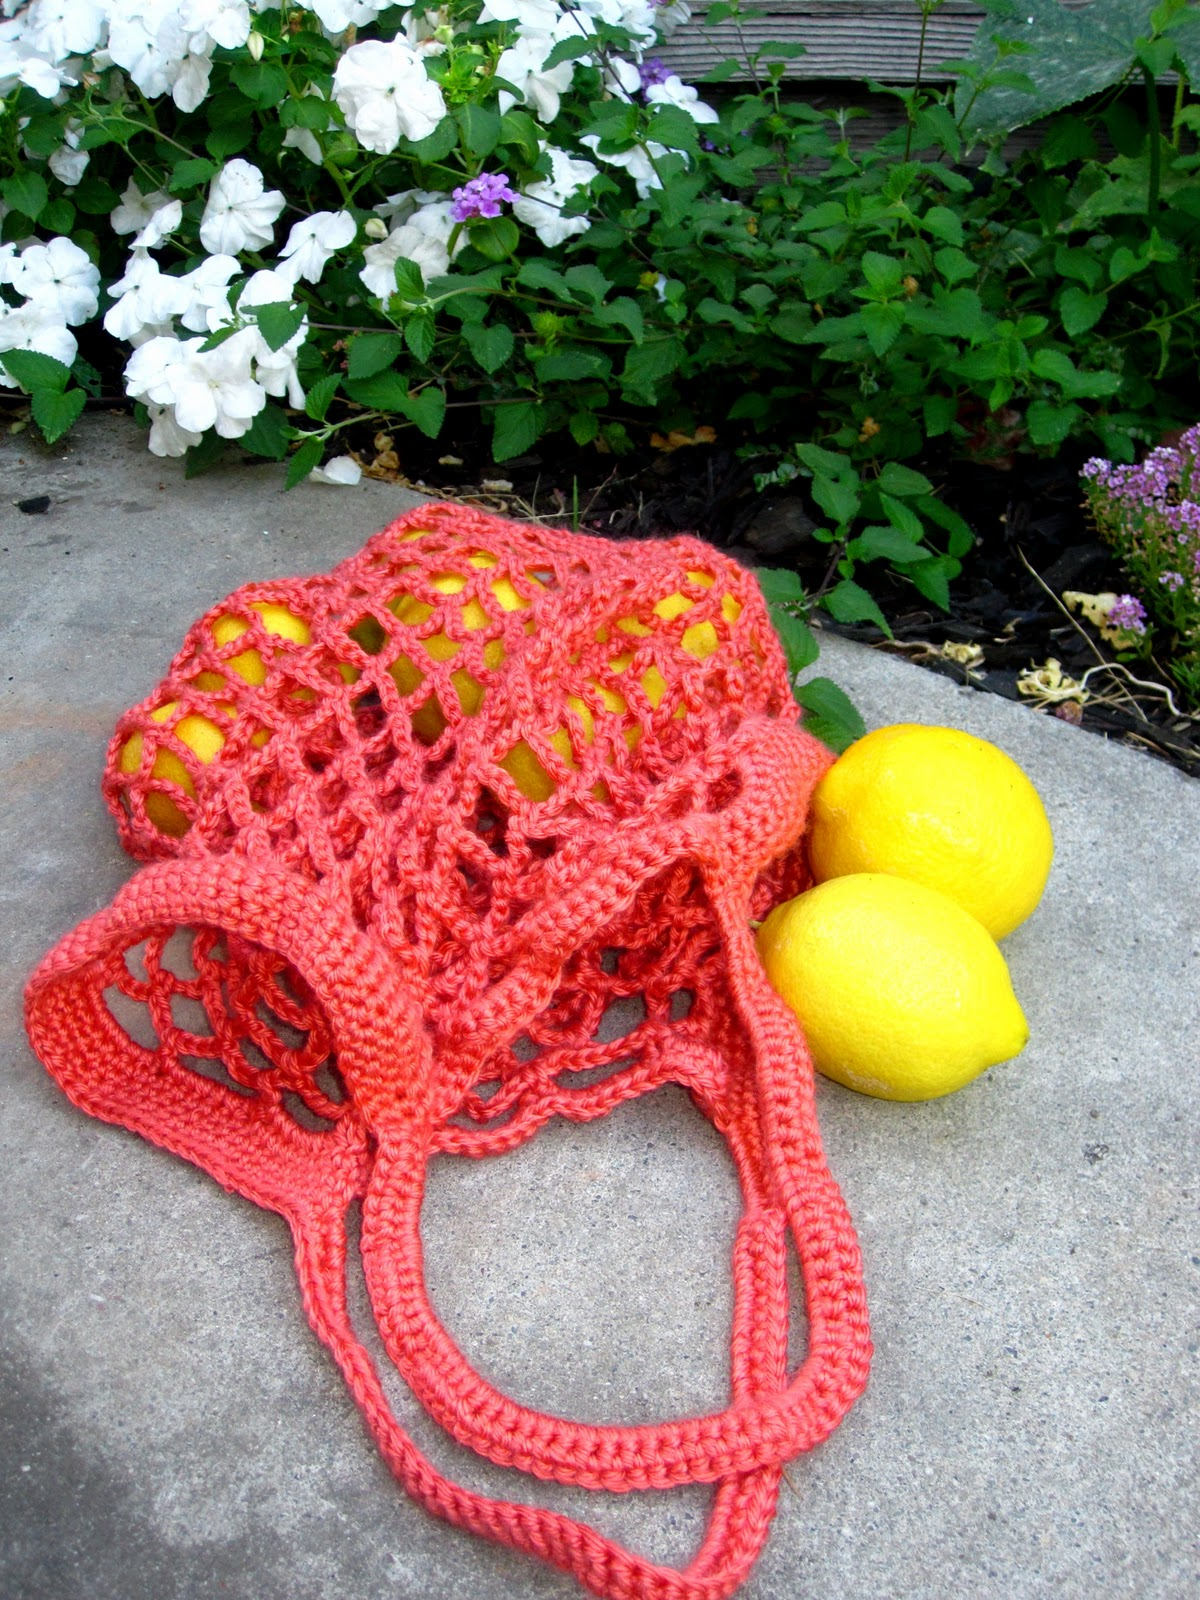 More Fun With An Apron: Crochet Produce Bag